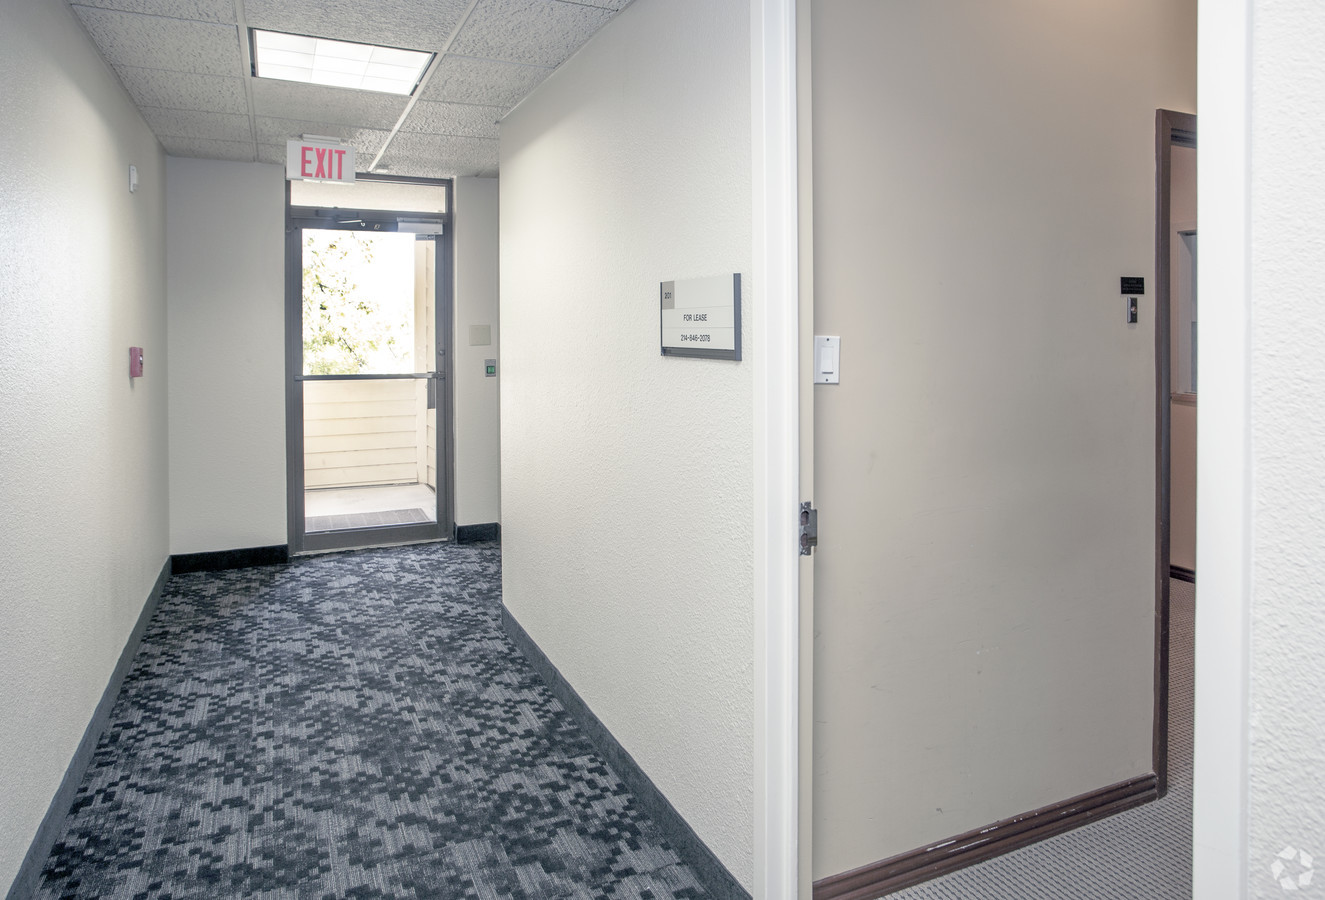 Lot 5 - Medical Office Suite in Dallas - Suite 200A